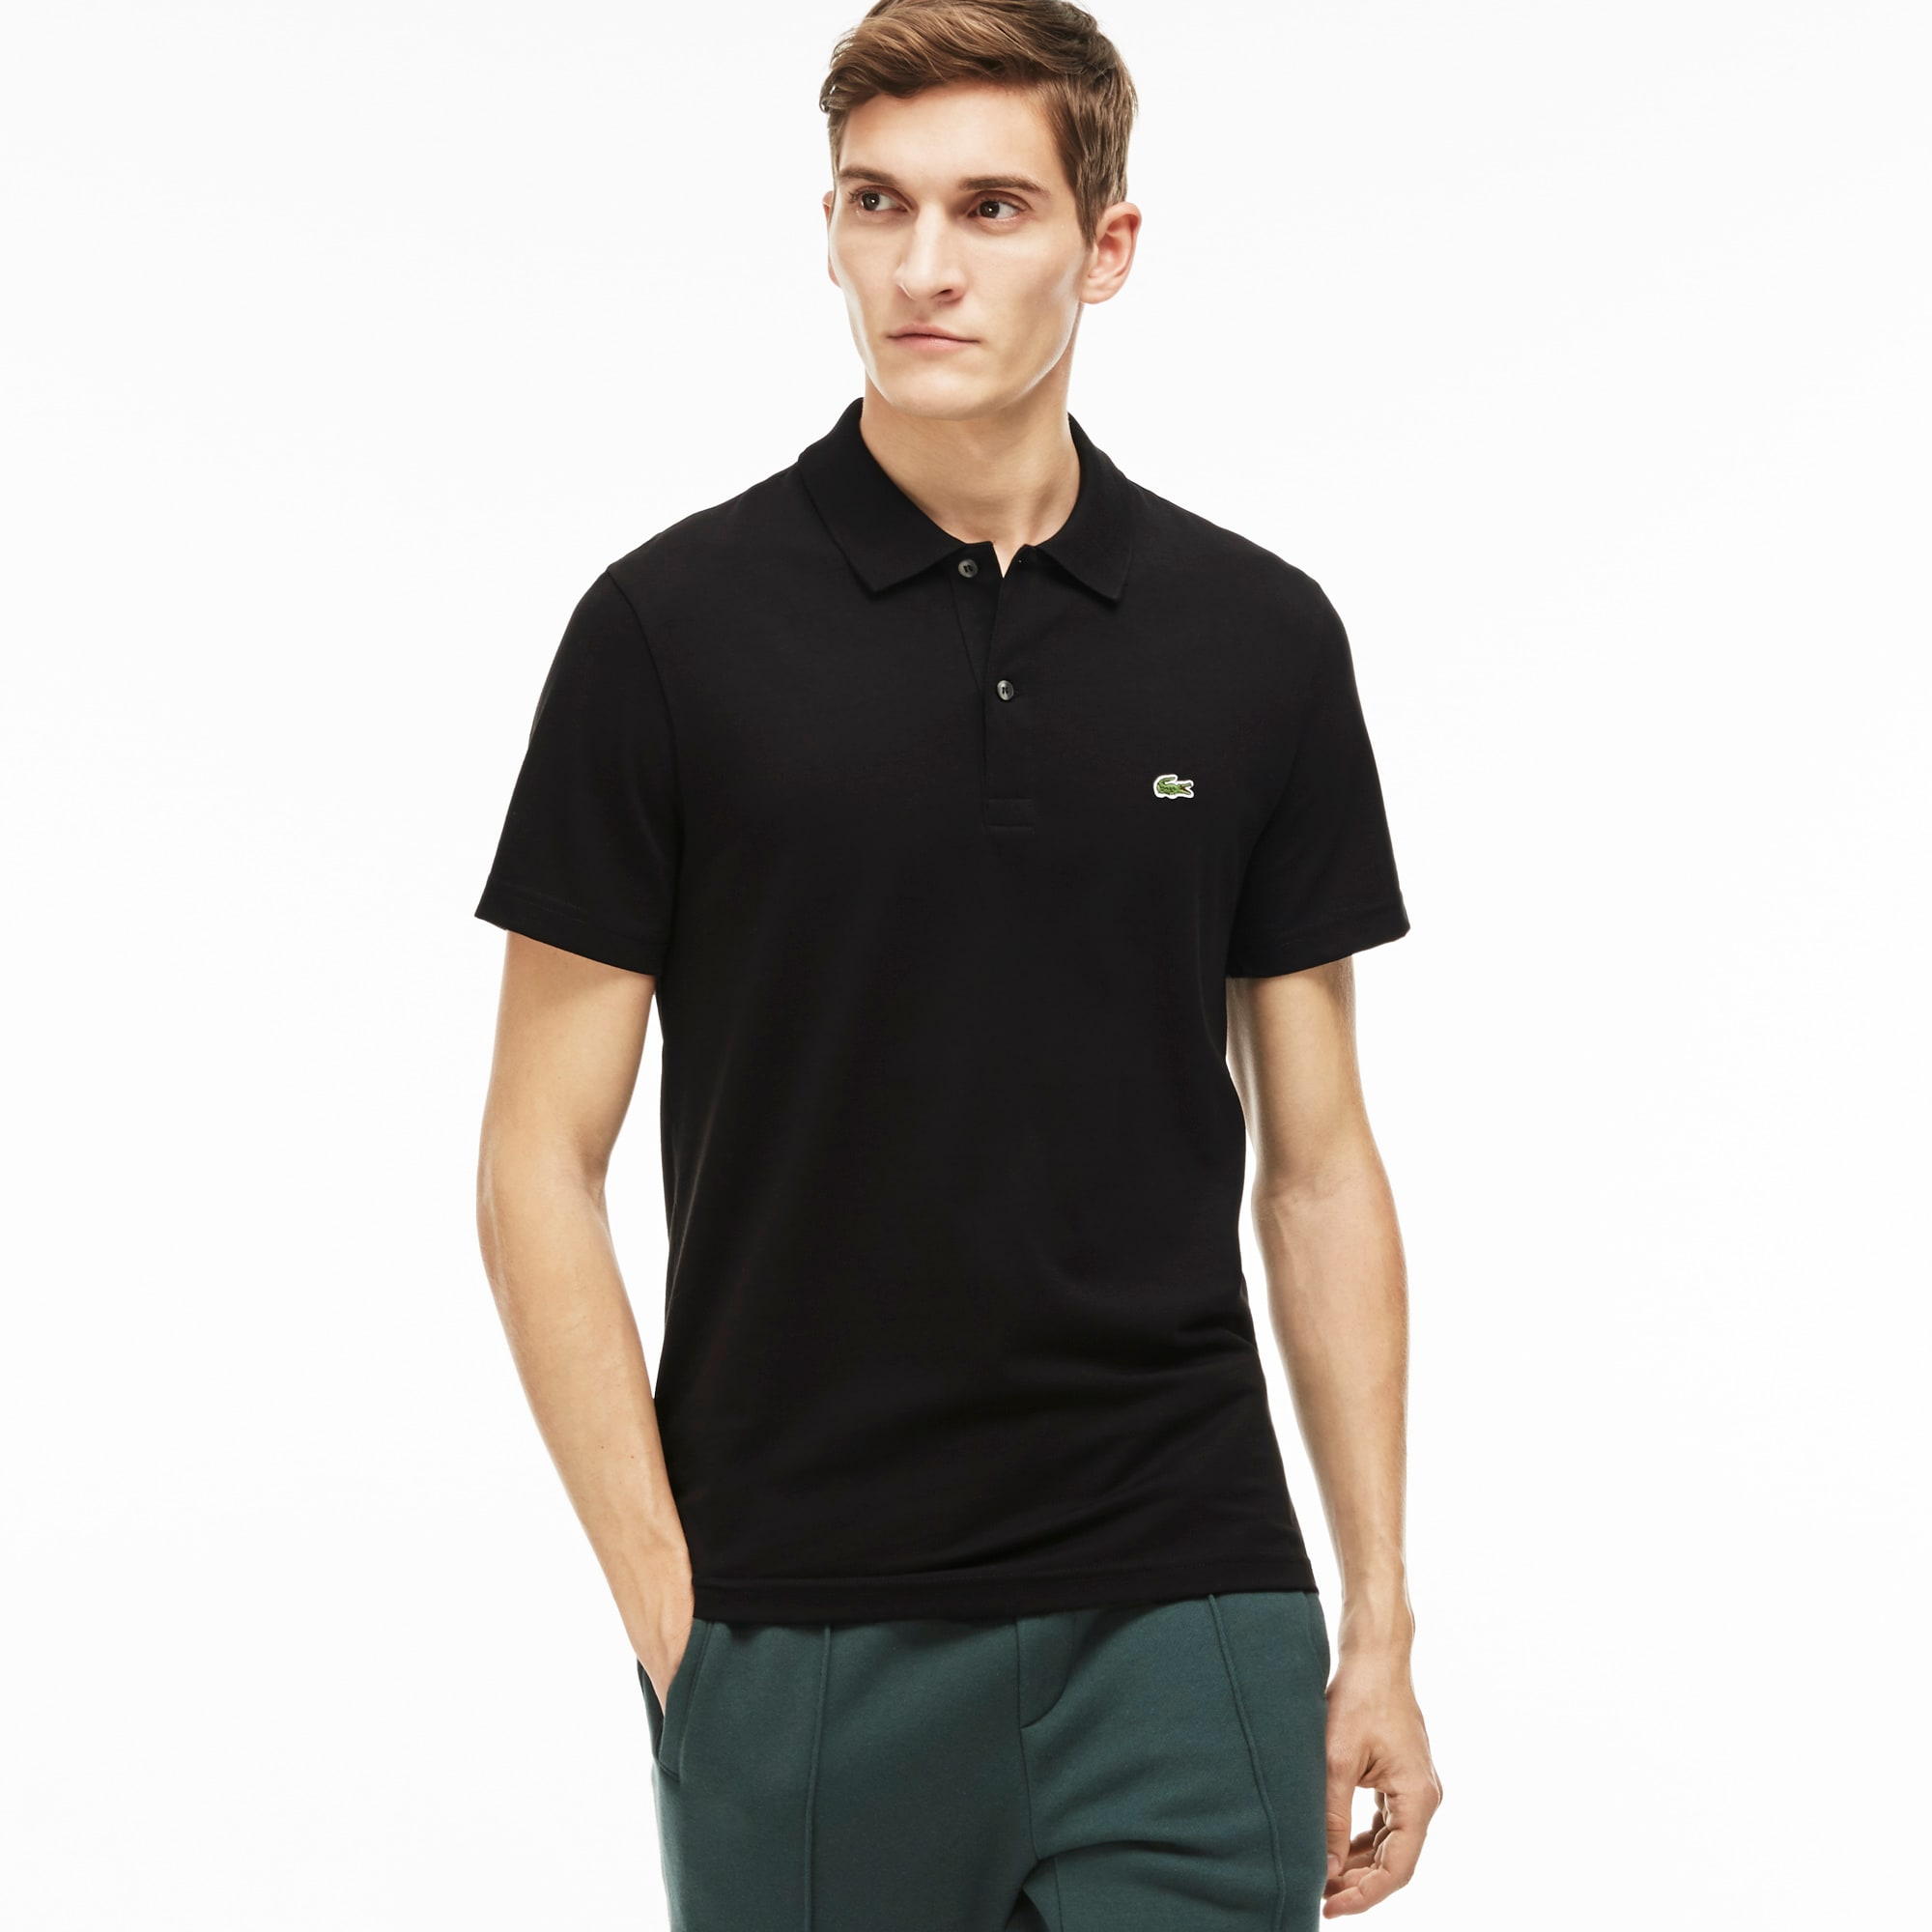 Camisa polo Lacoste masculina regular fit 8be45ee7068a2